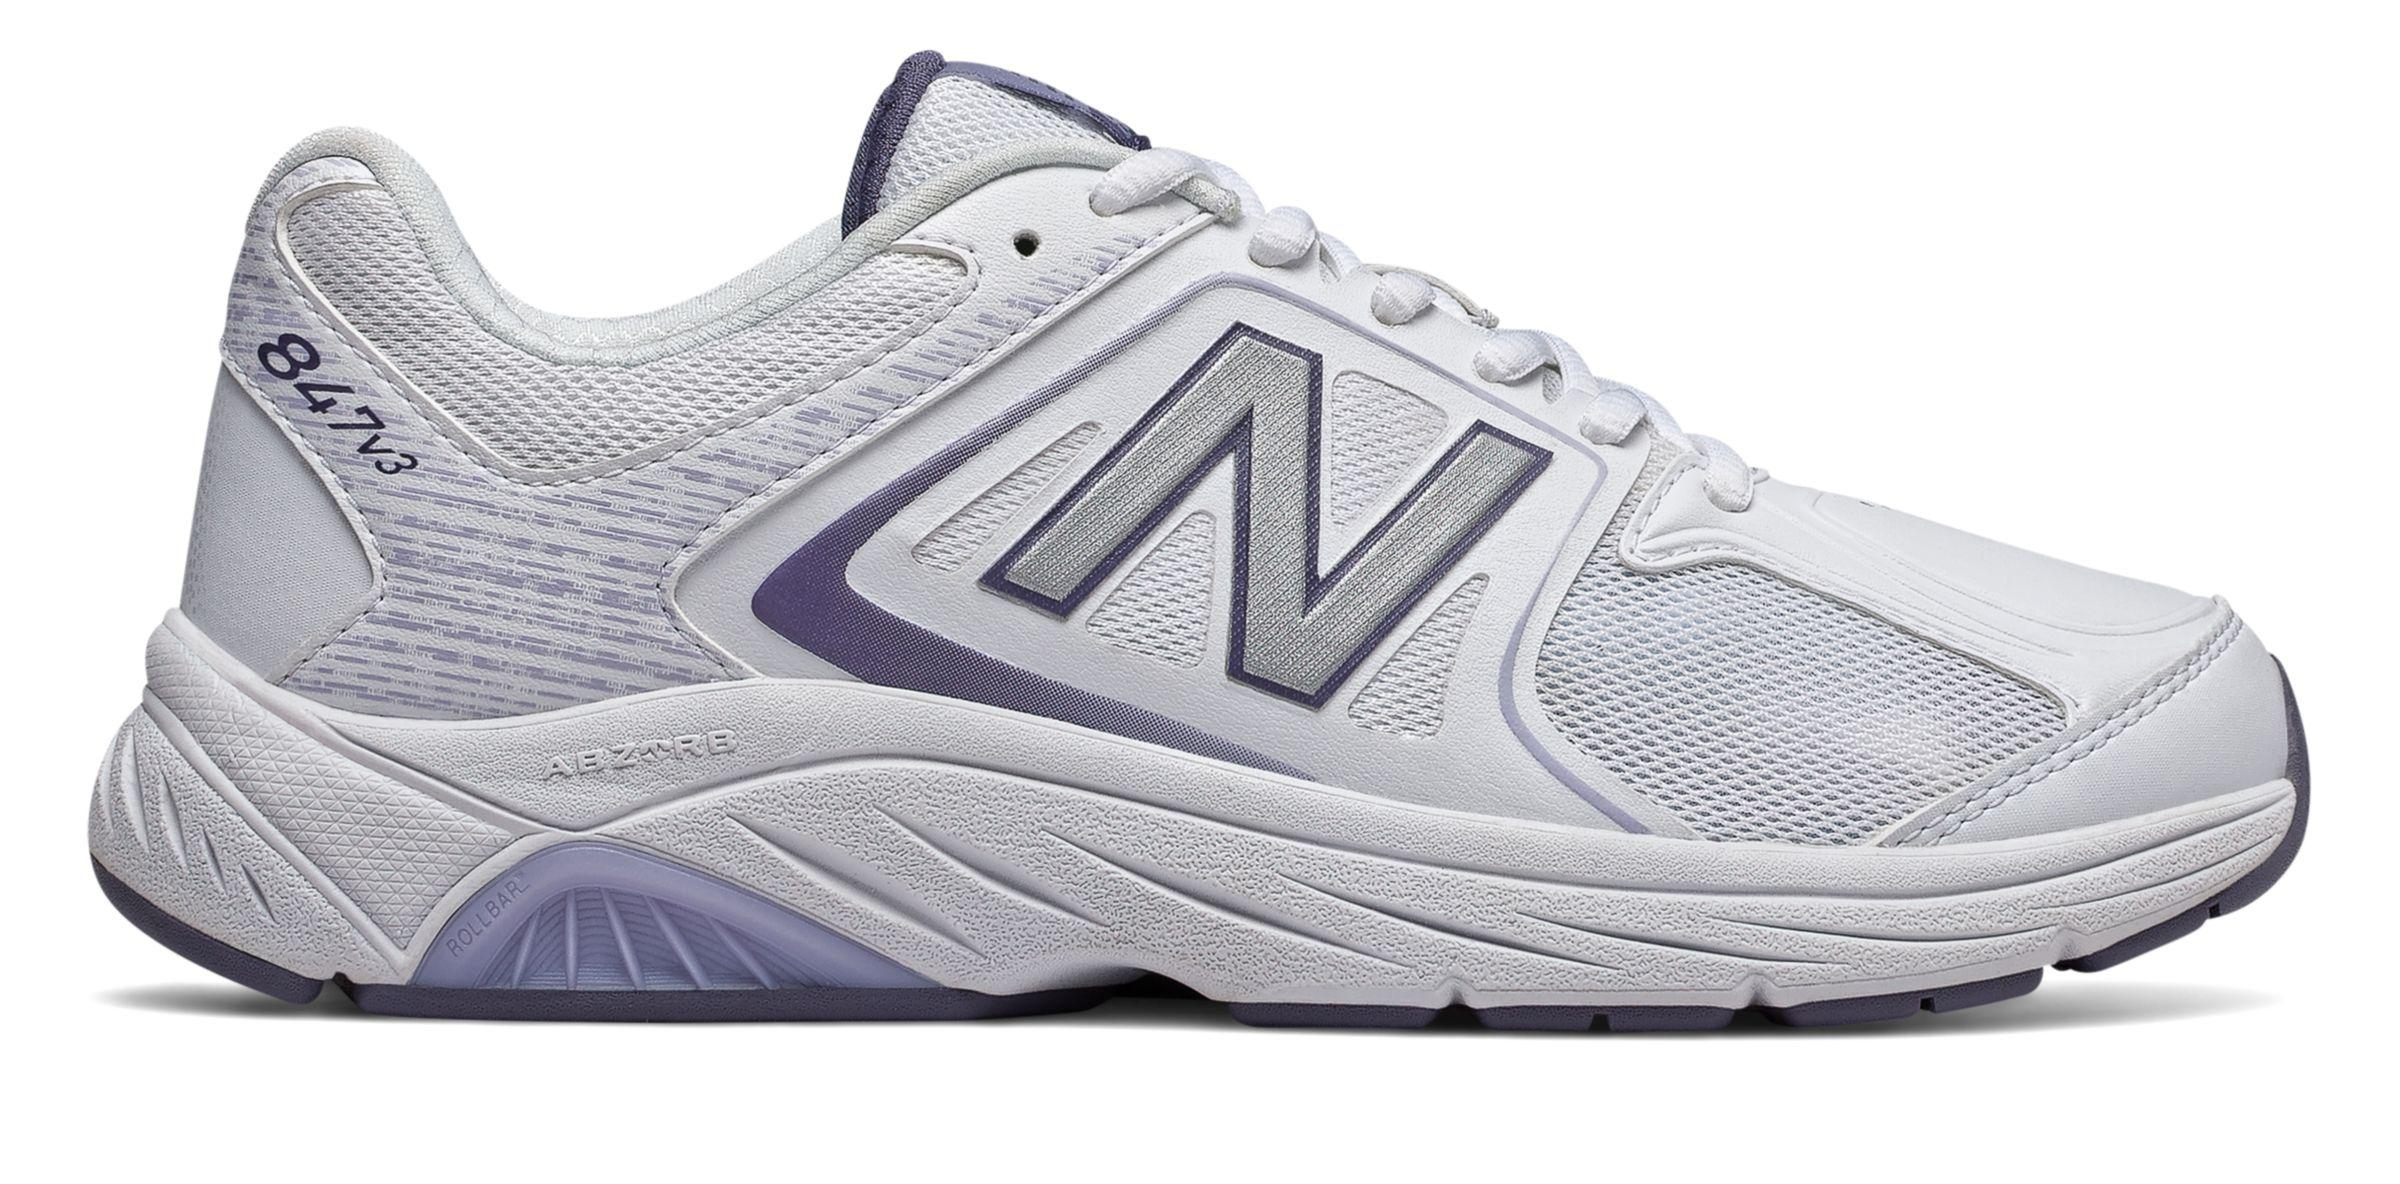 New Balance 40v1 Moda casual